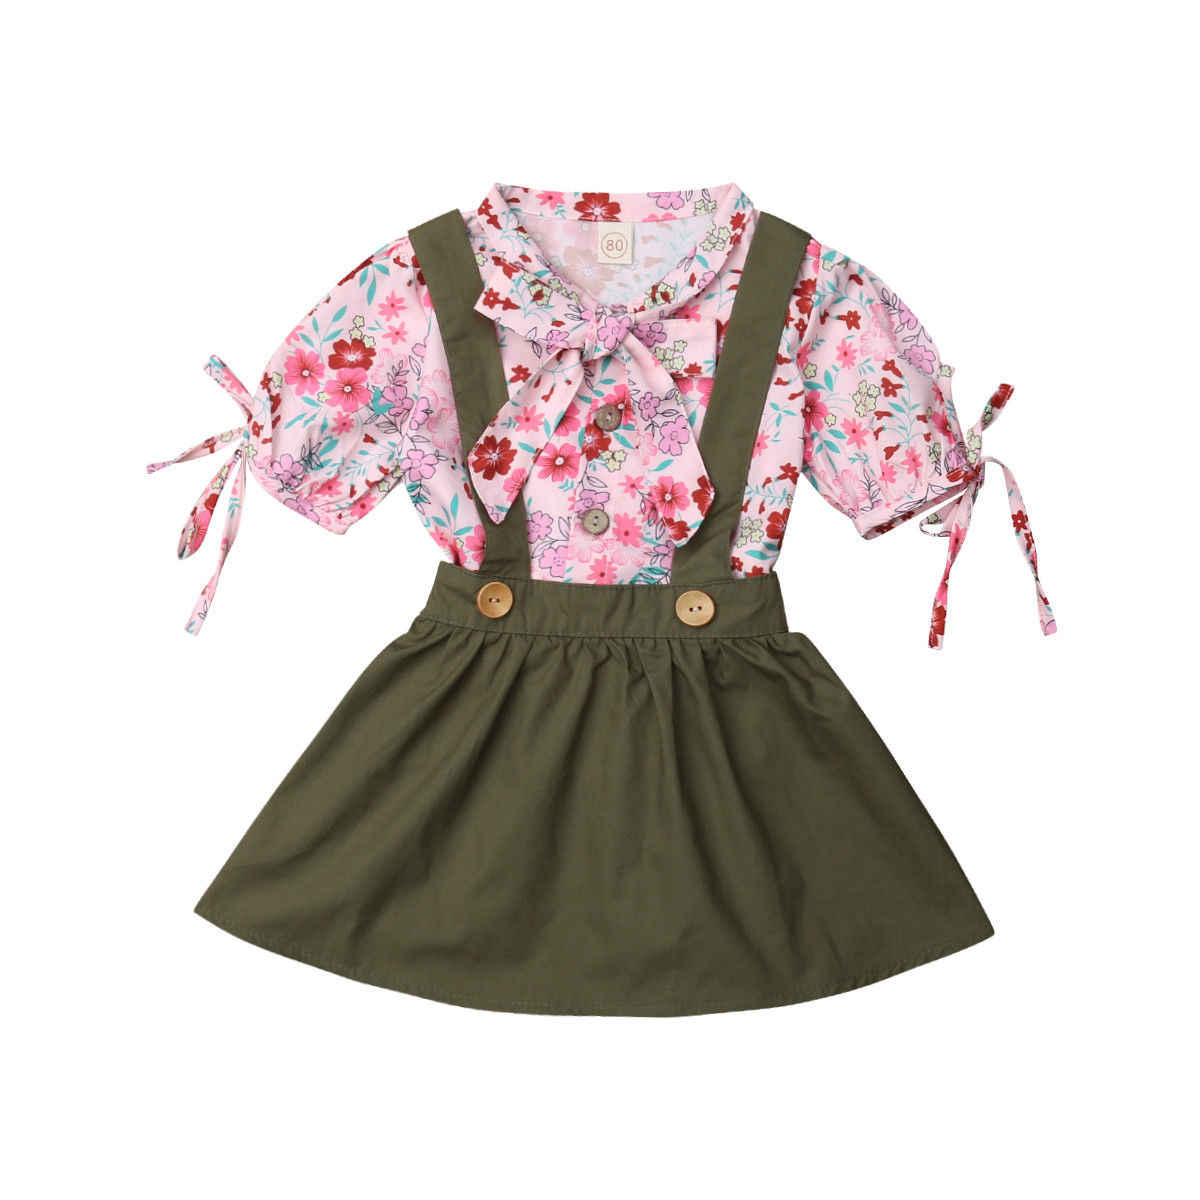 4e644481eed Detail Feedback Questions about 2019 Newest Style Toddler Kids Baby ...